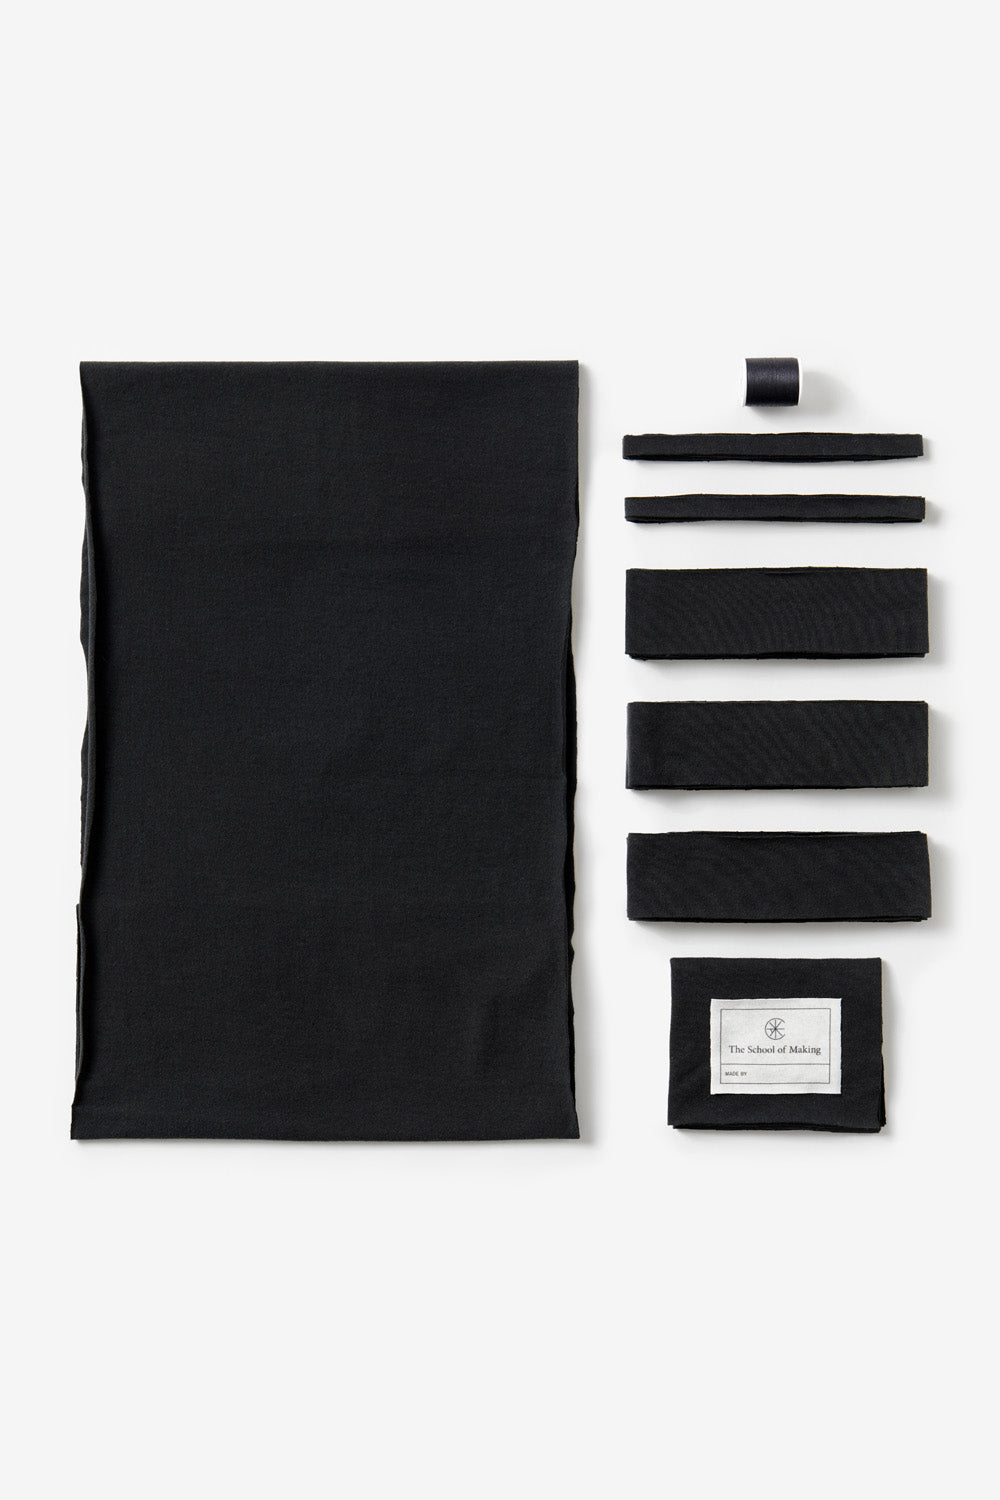 The School of Making Ruffle Scarf Kit in Black DIY Kit Contents